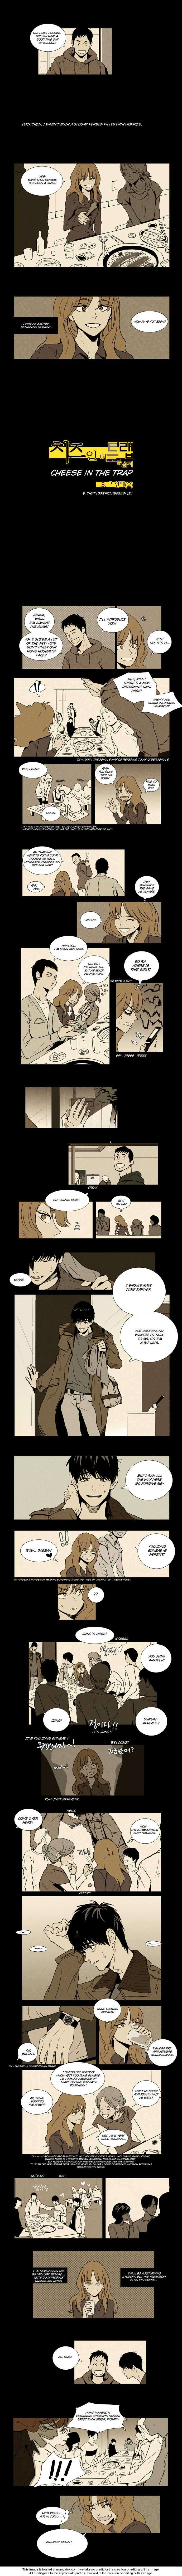 Cheese In The Trap 3 Page 1